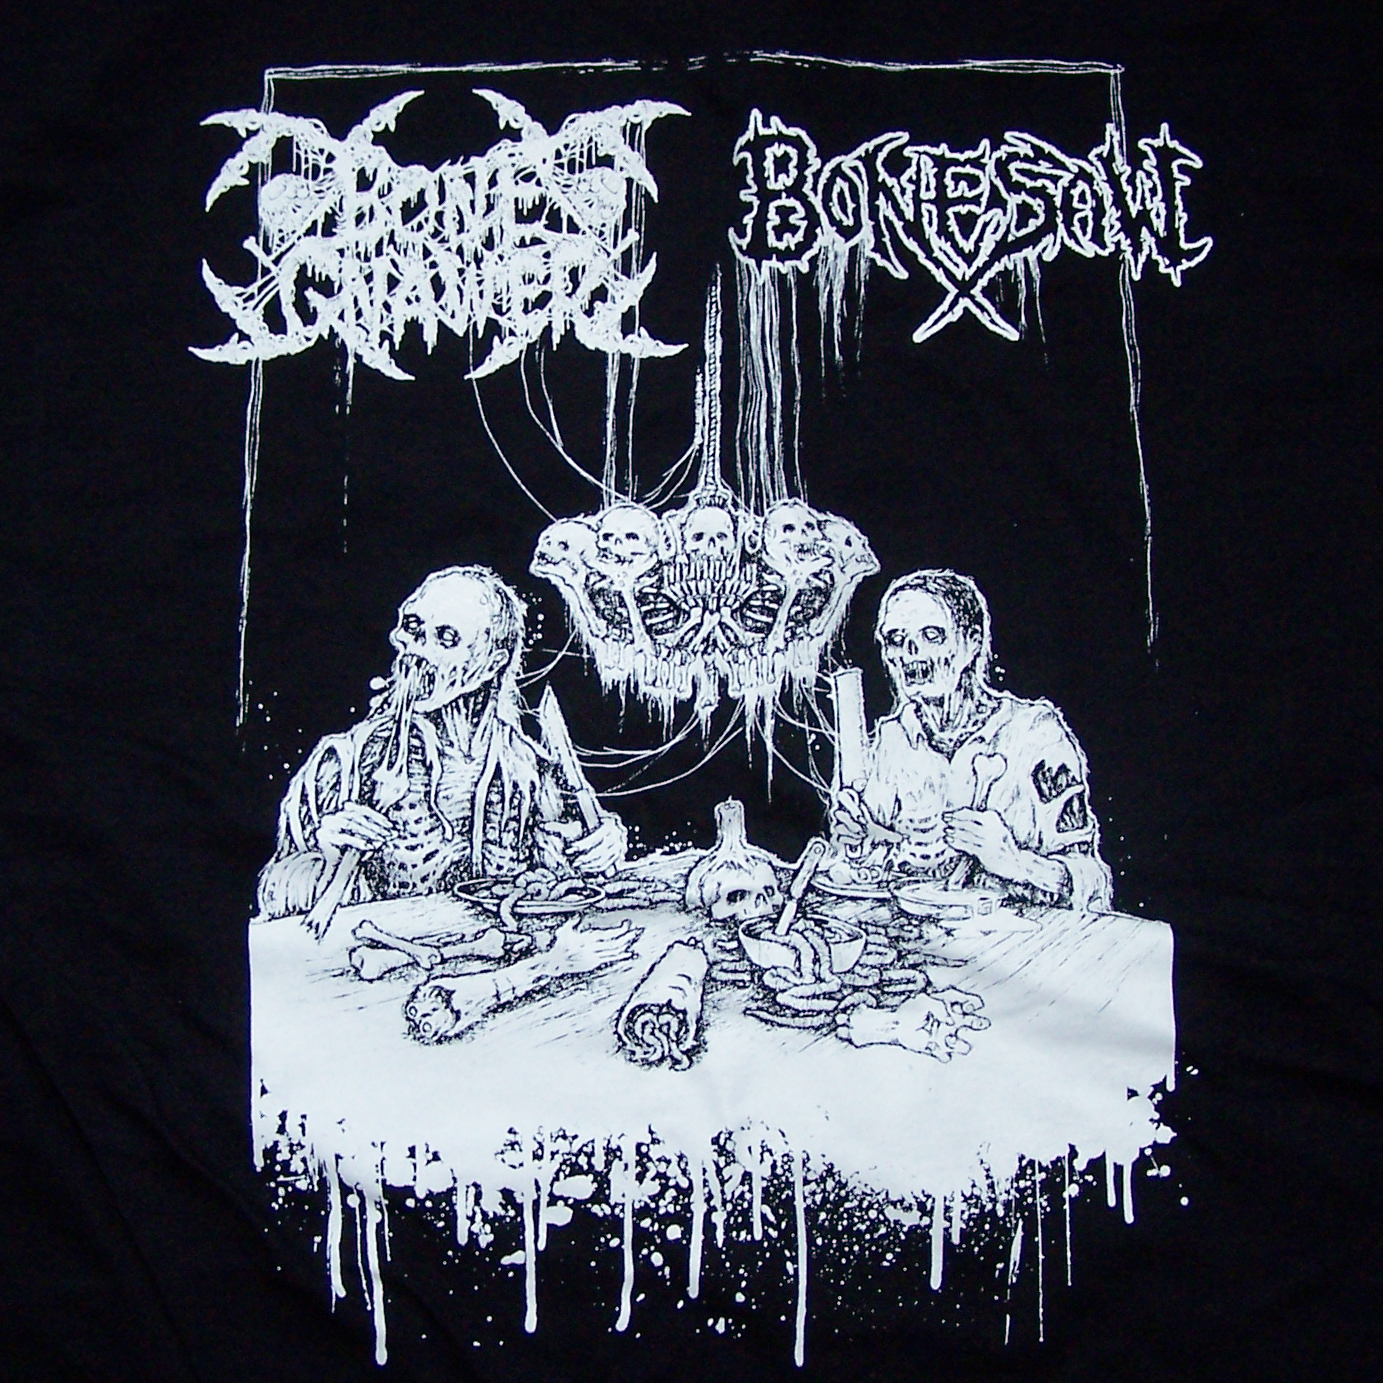 BONE GNAWER/ BONESAW TS